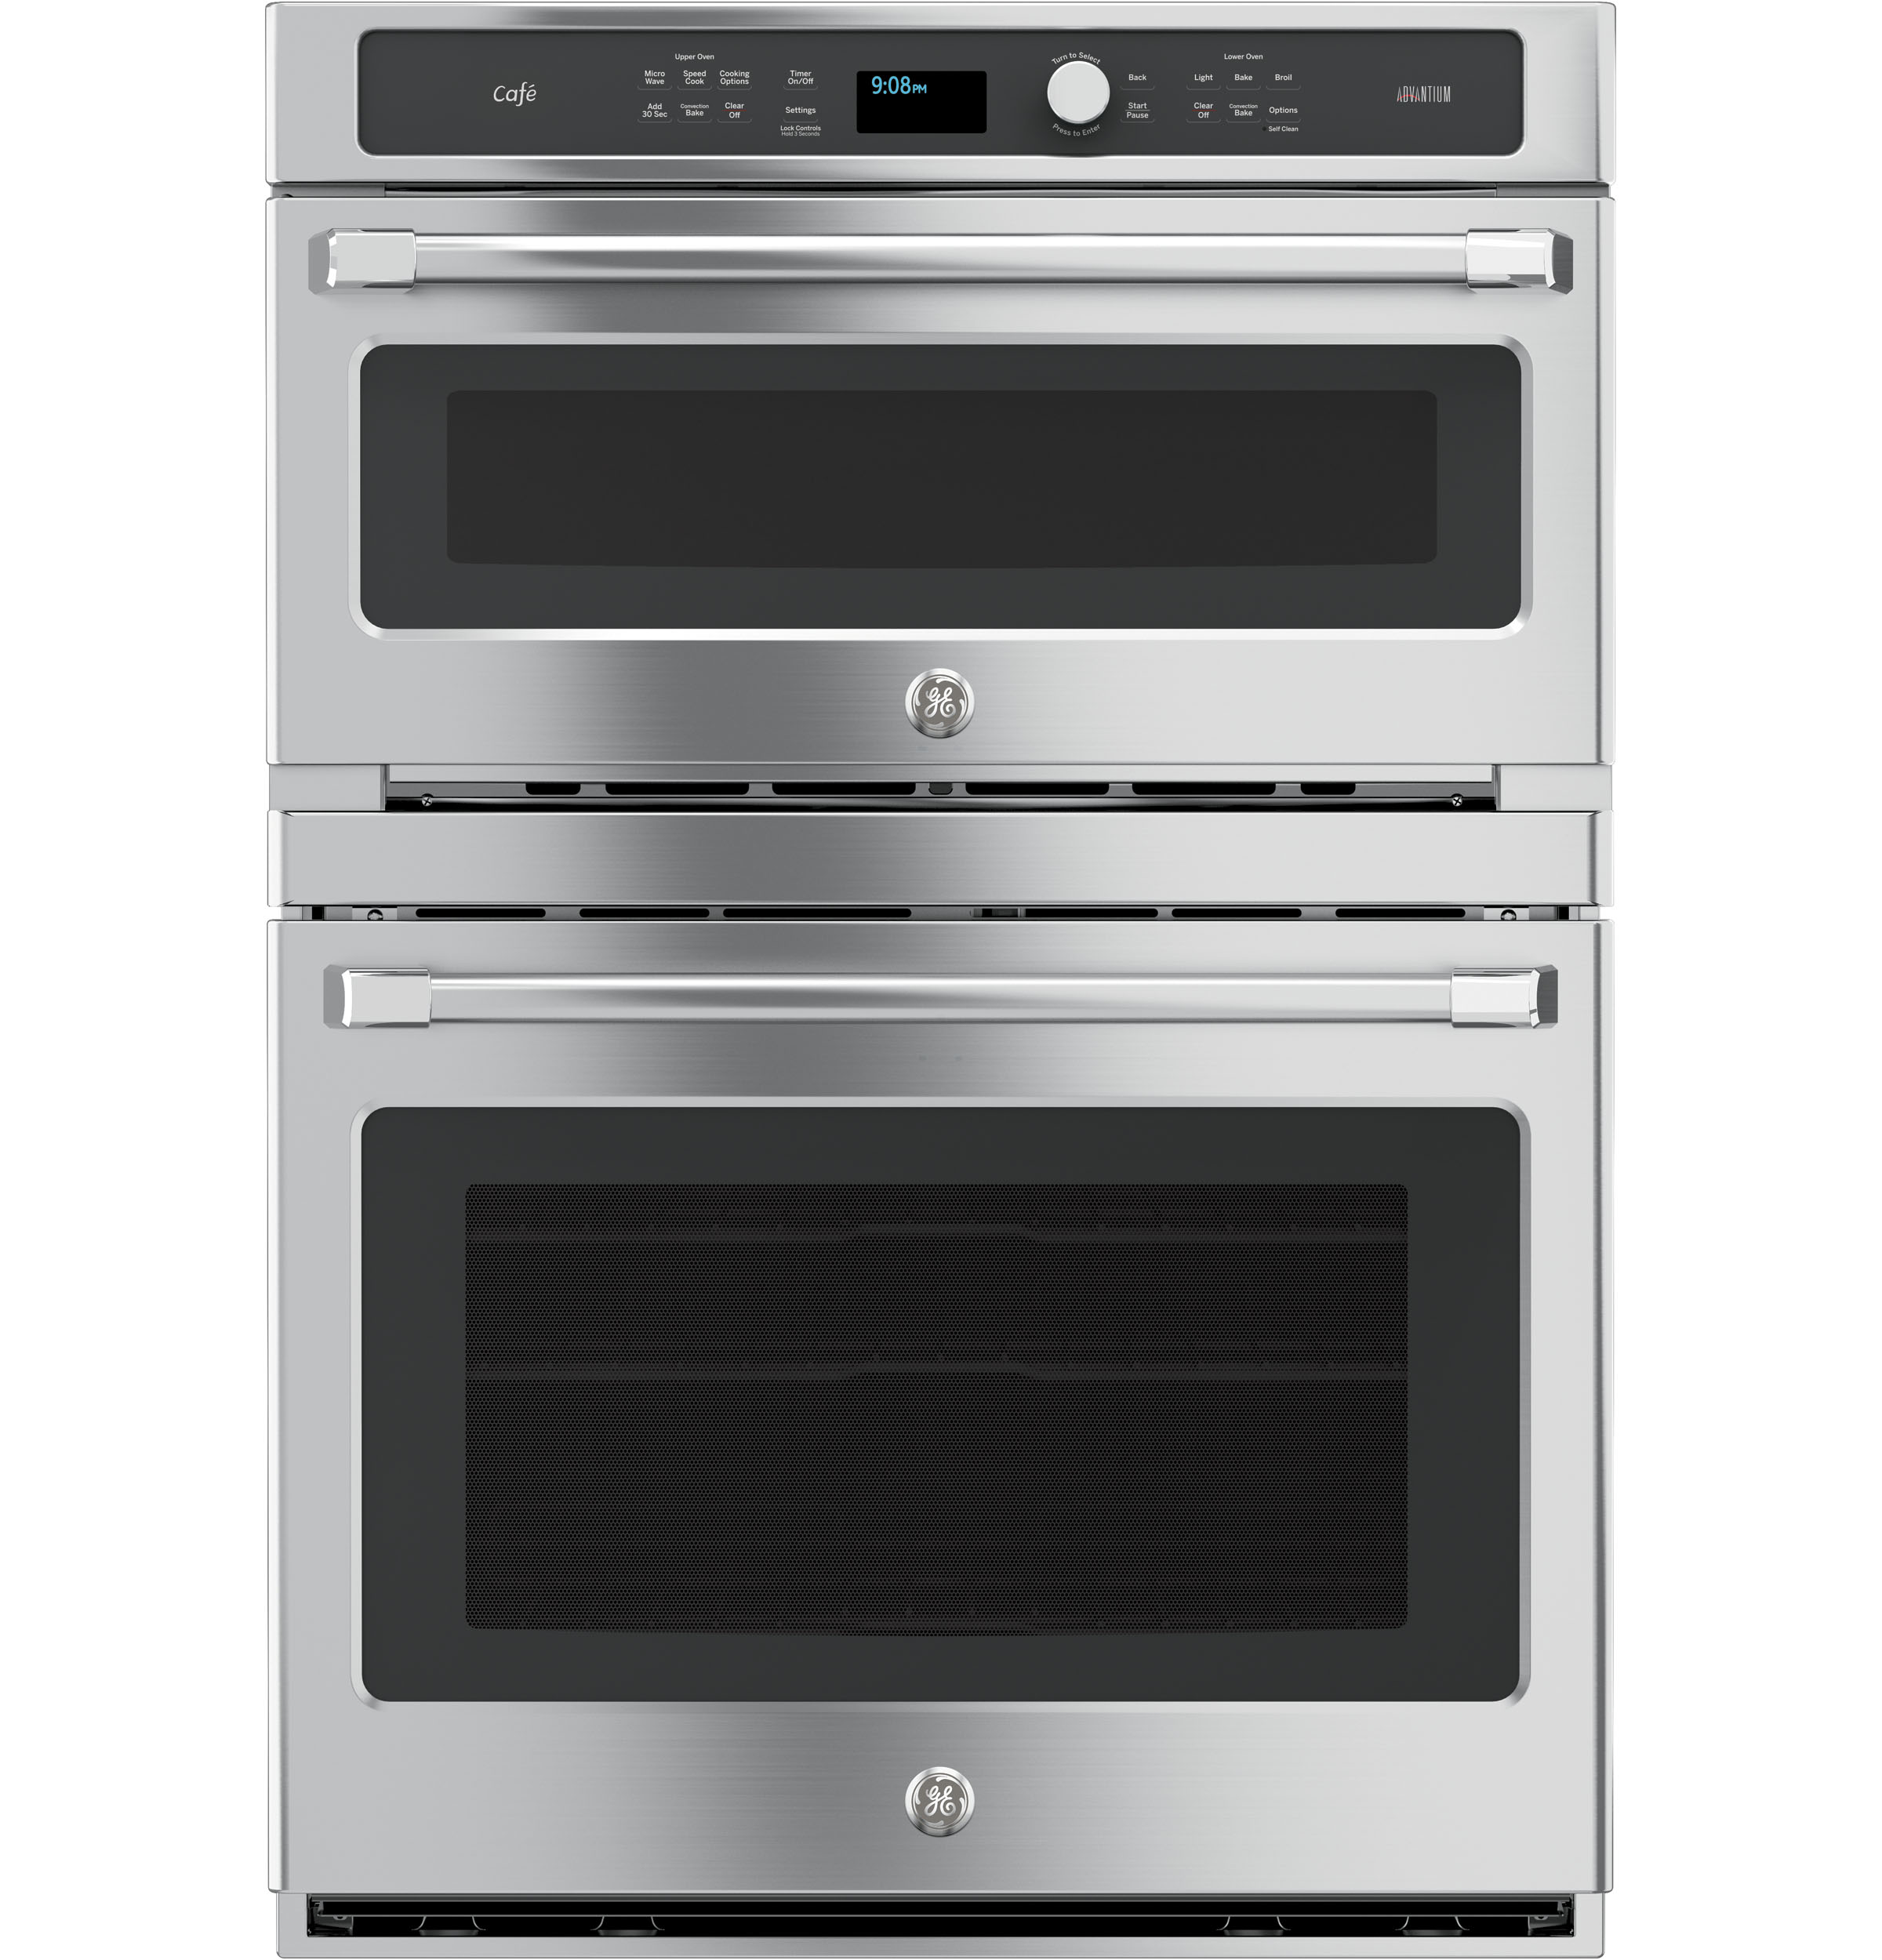 GE Cafe GE Café™ Series 30 in. Combination Double Wall Oven with Convection and Advantium® Technology